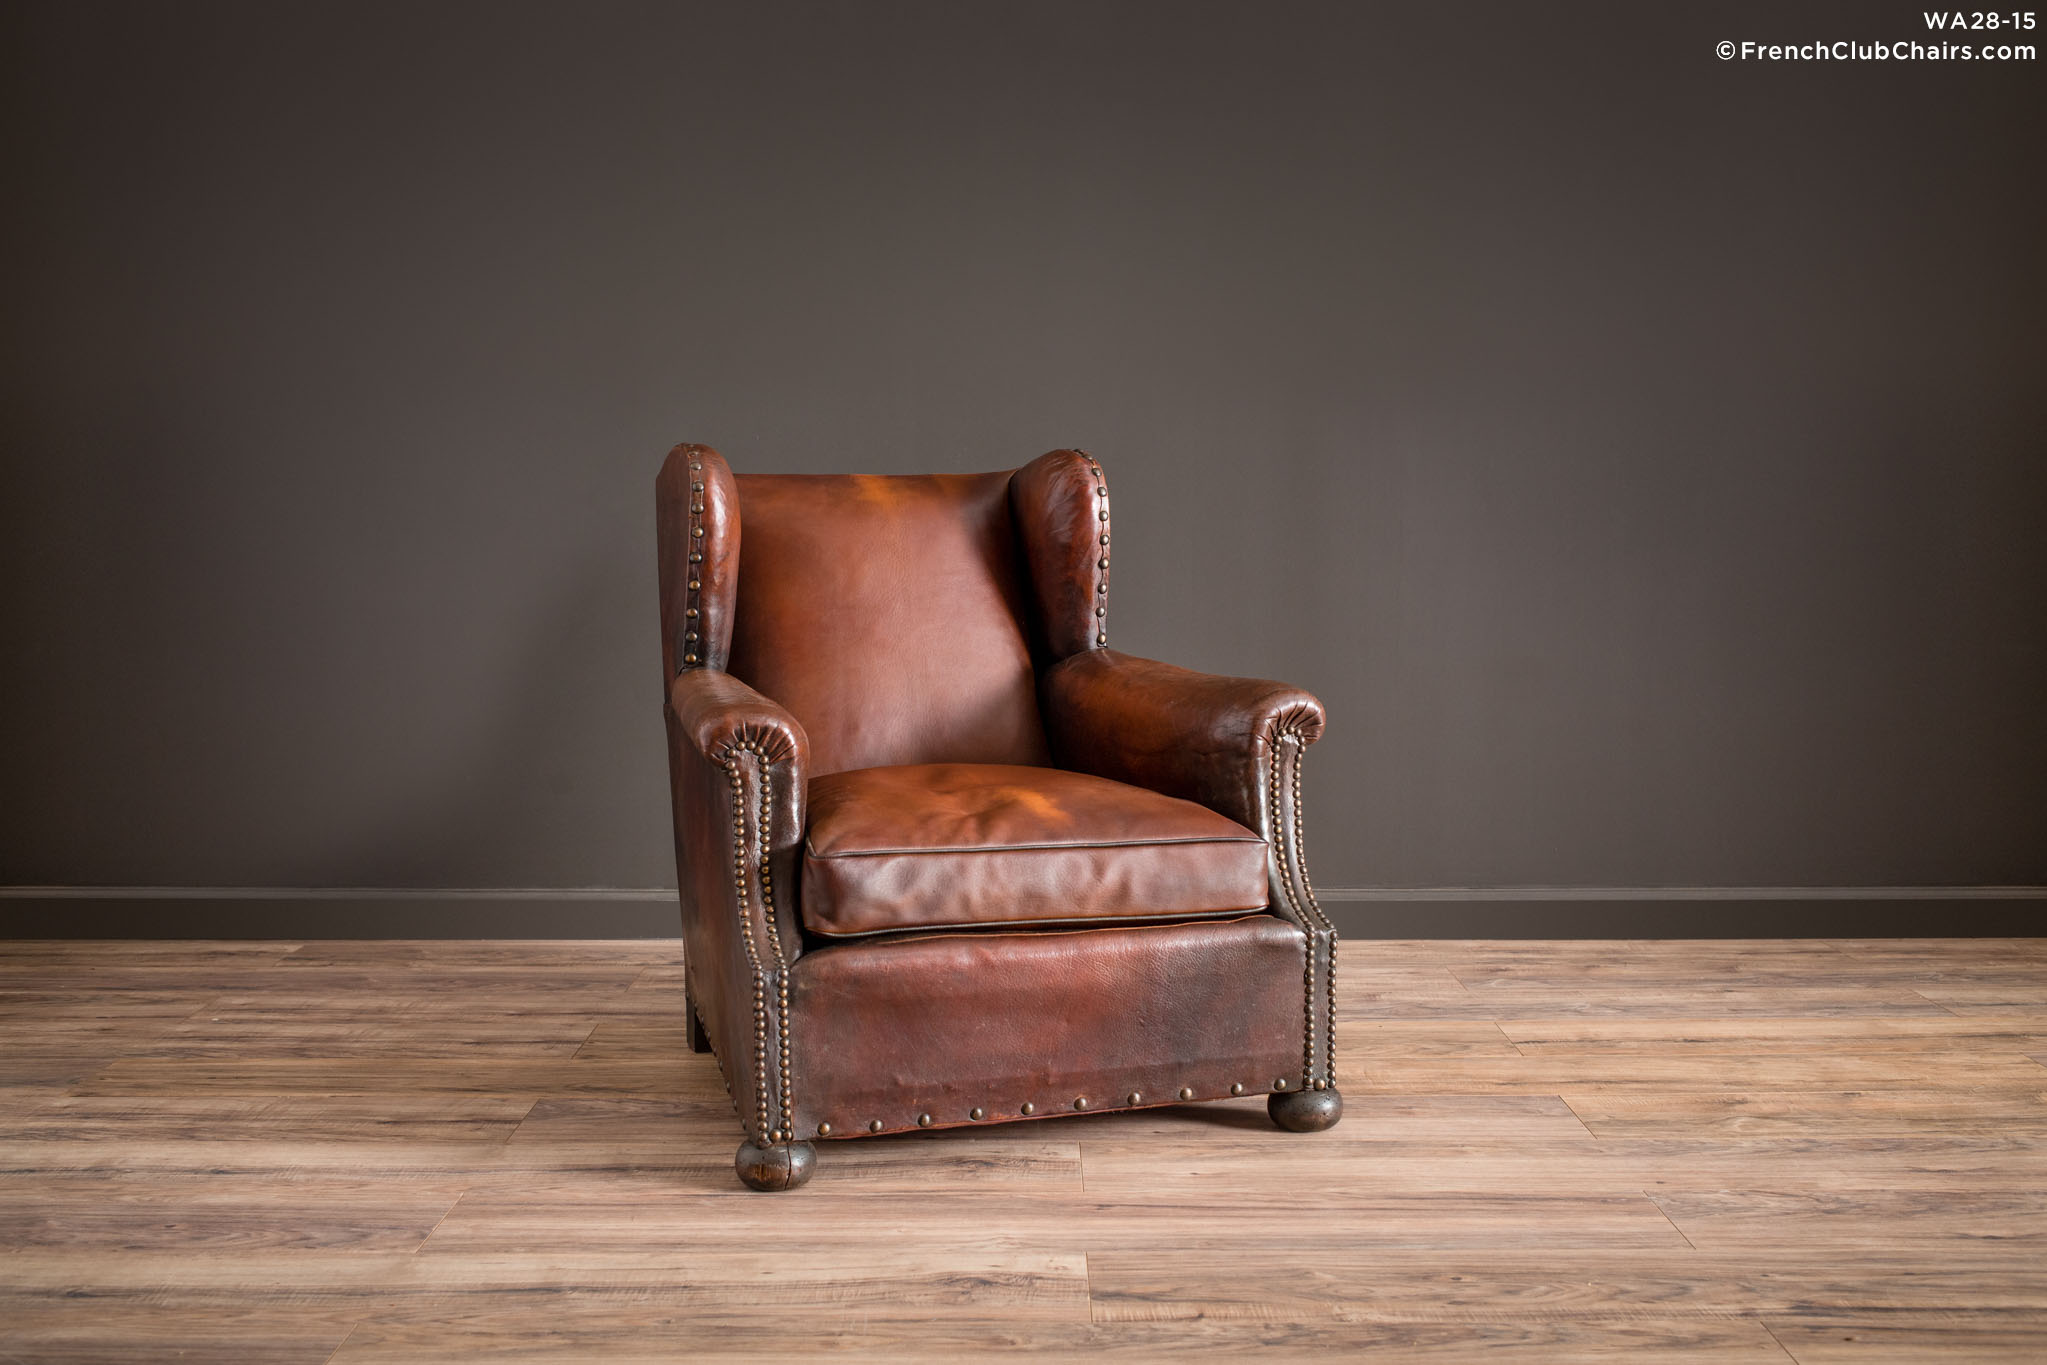 WA_28-15_Givernay_Wingback_Solo_R_1TQ1-williams-antiks-leather-french-club-chair-wa_fcccom